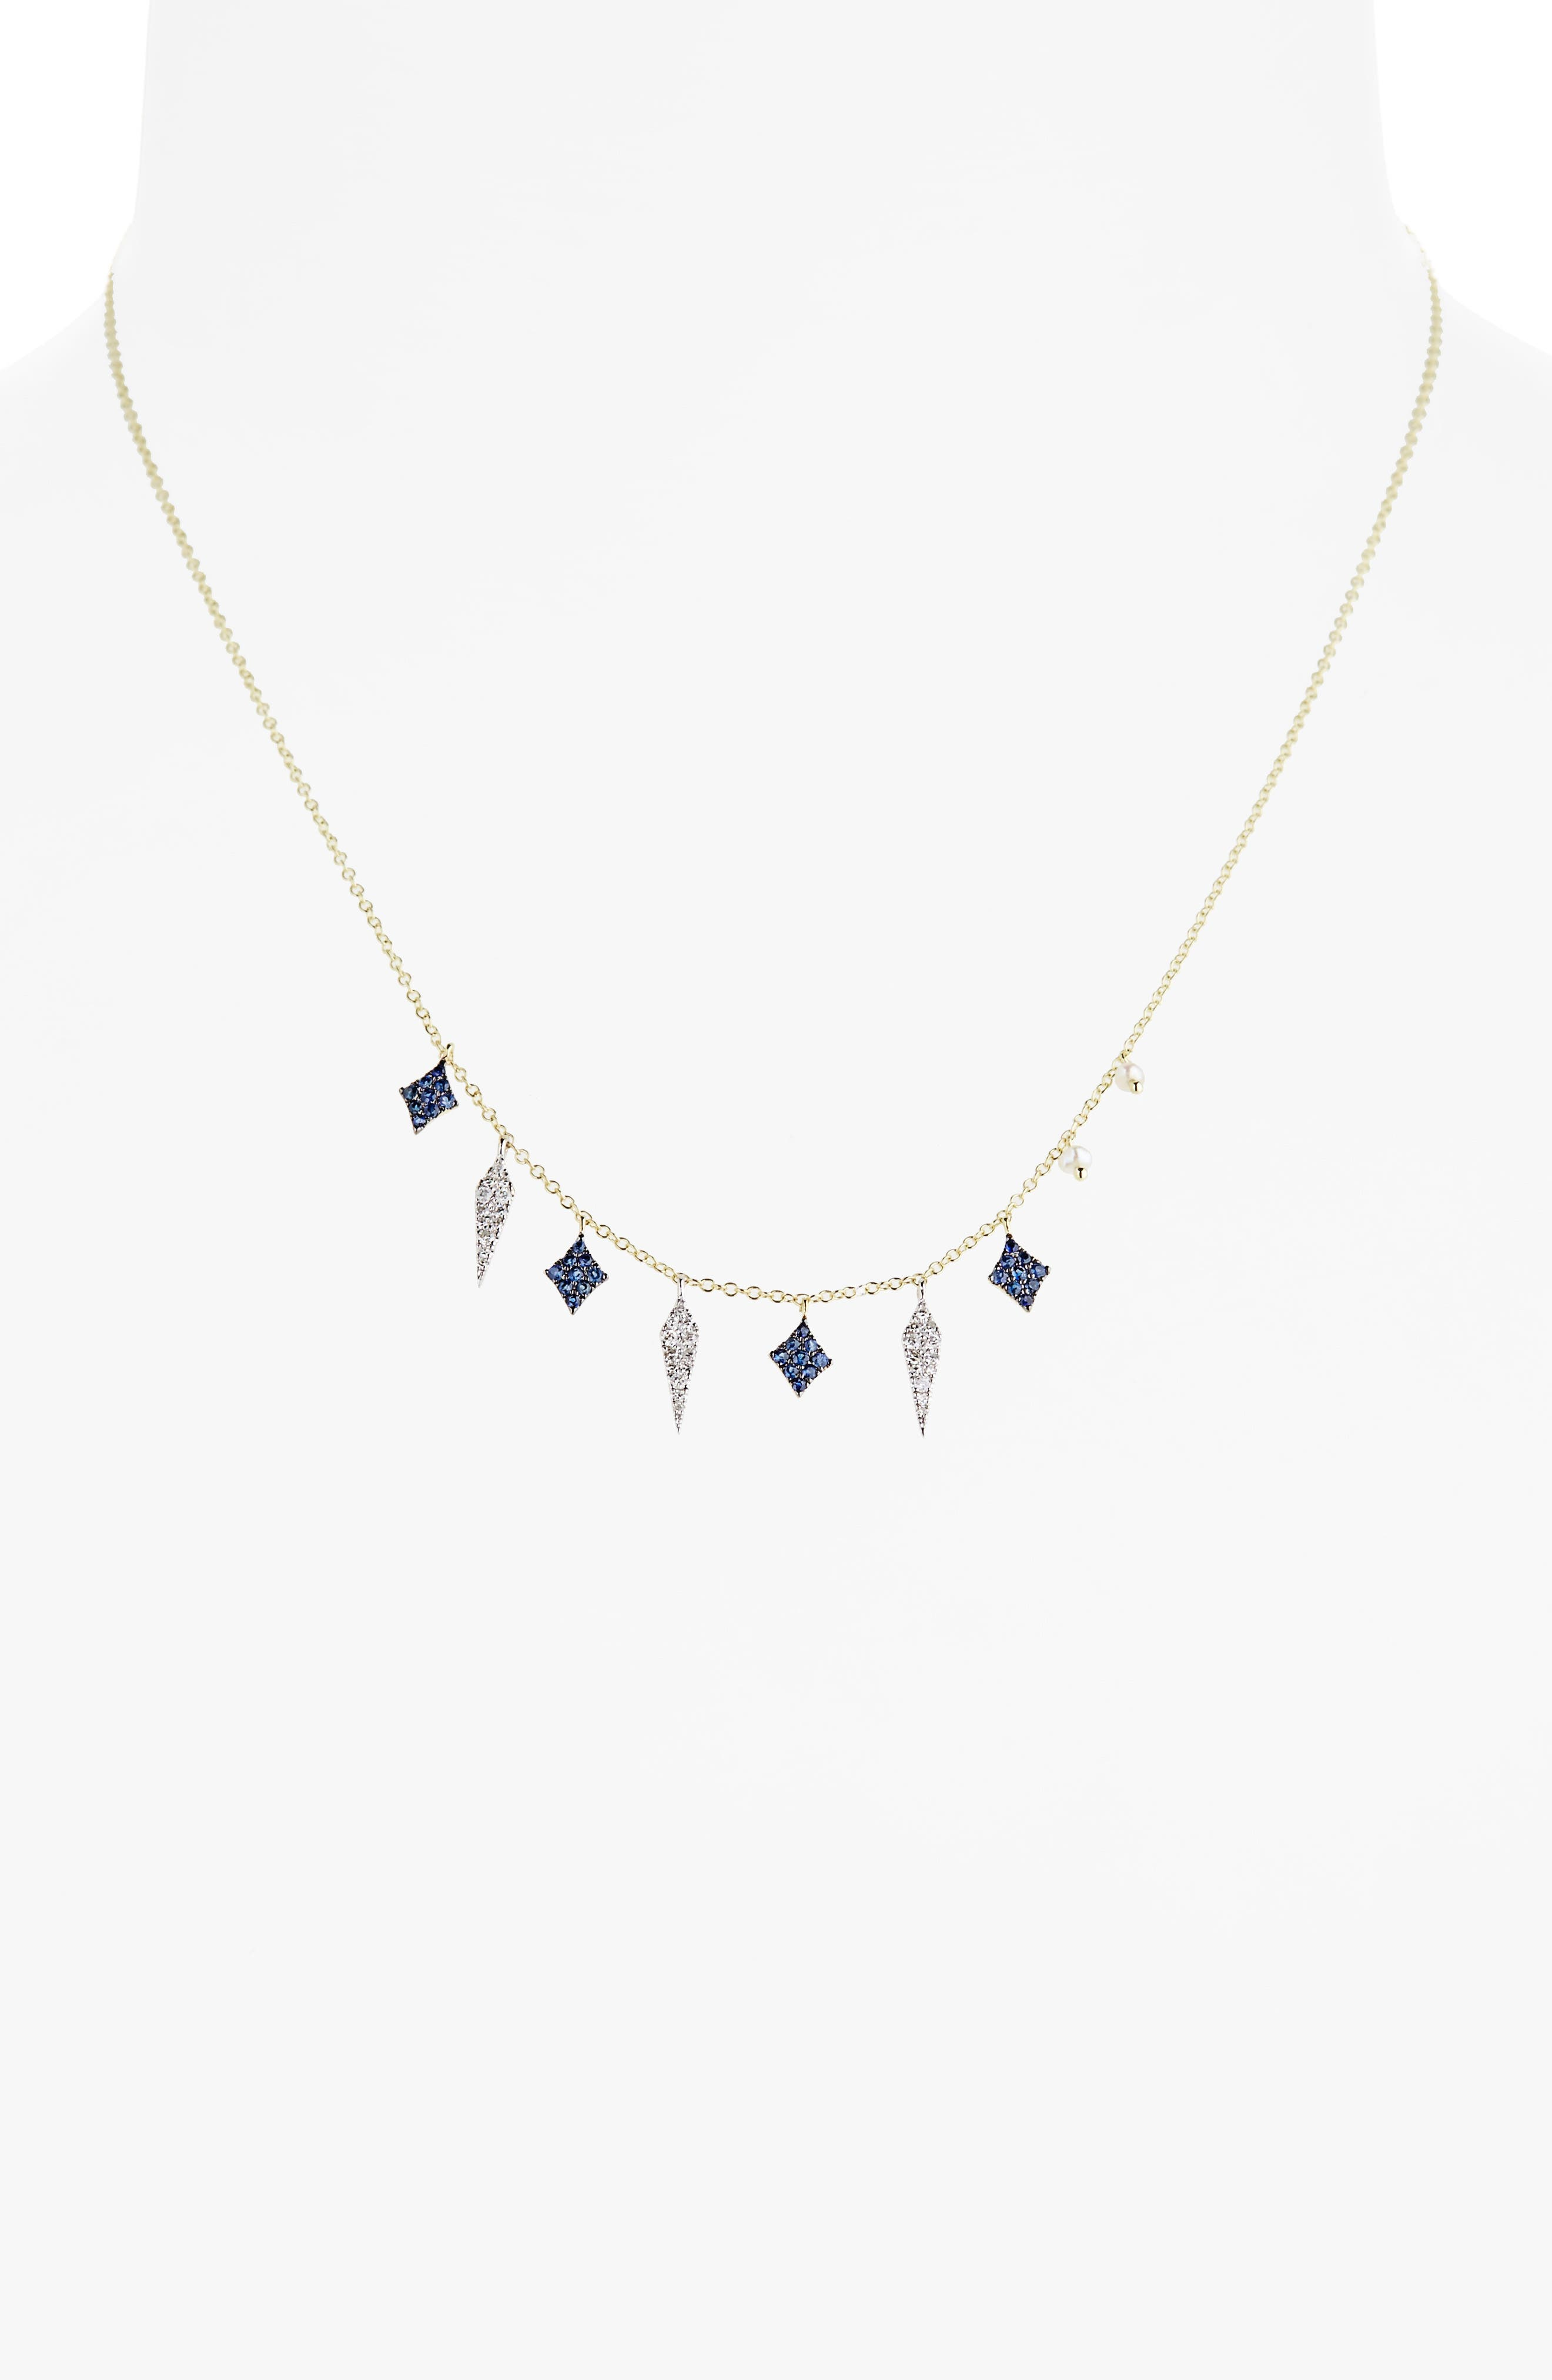 Miera T Diamond & Sapphire Charm Necklace,                             Main thumbnail 1, color,                             Yellow Gold